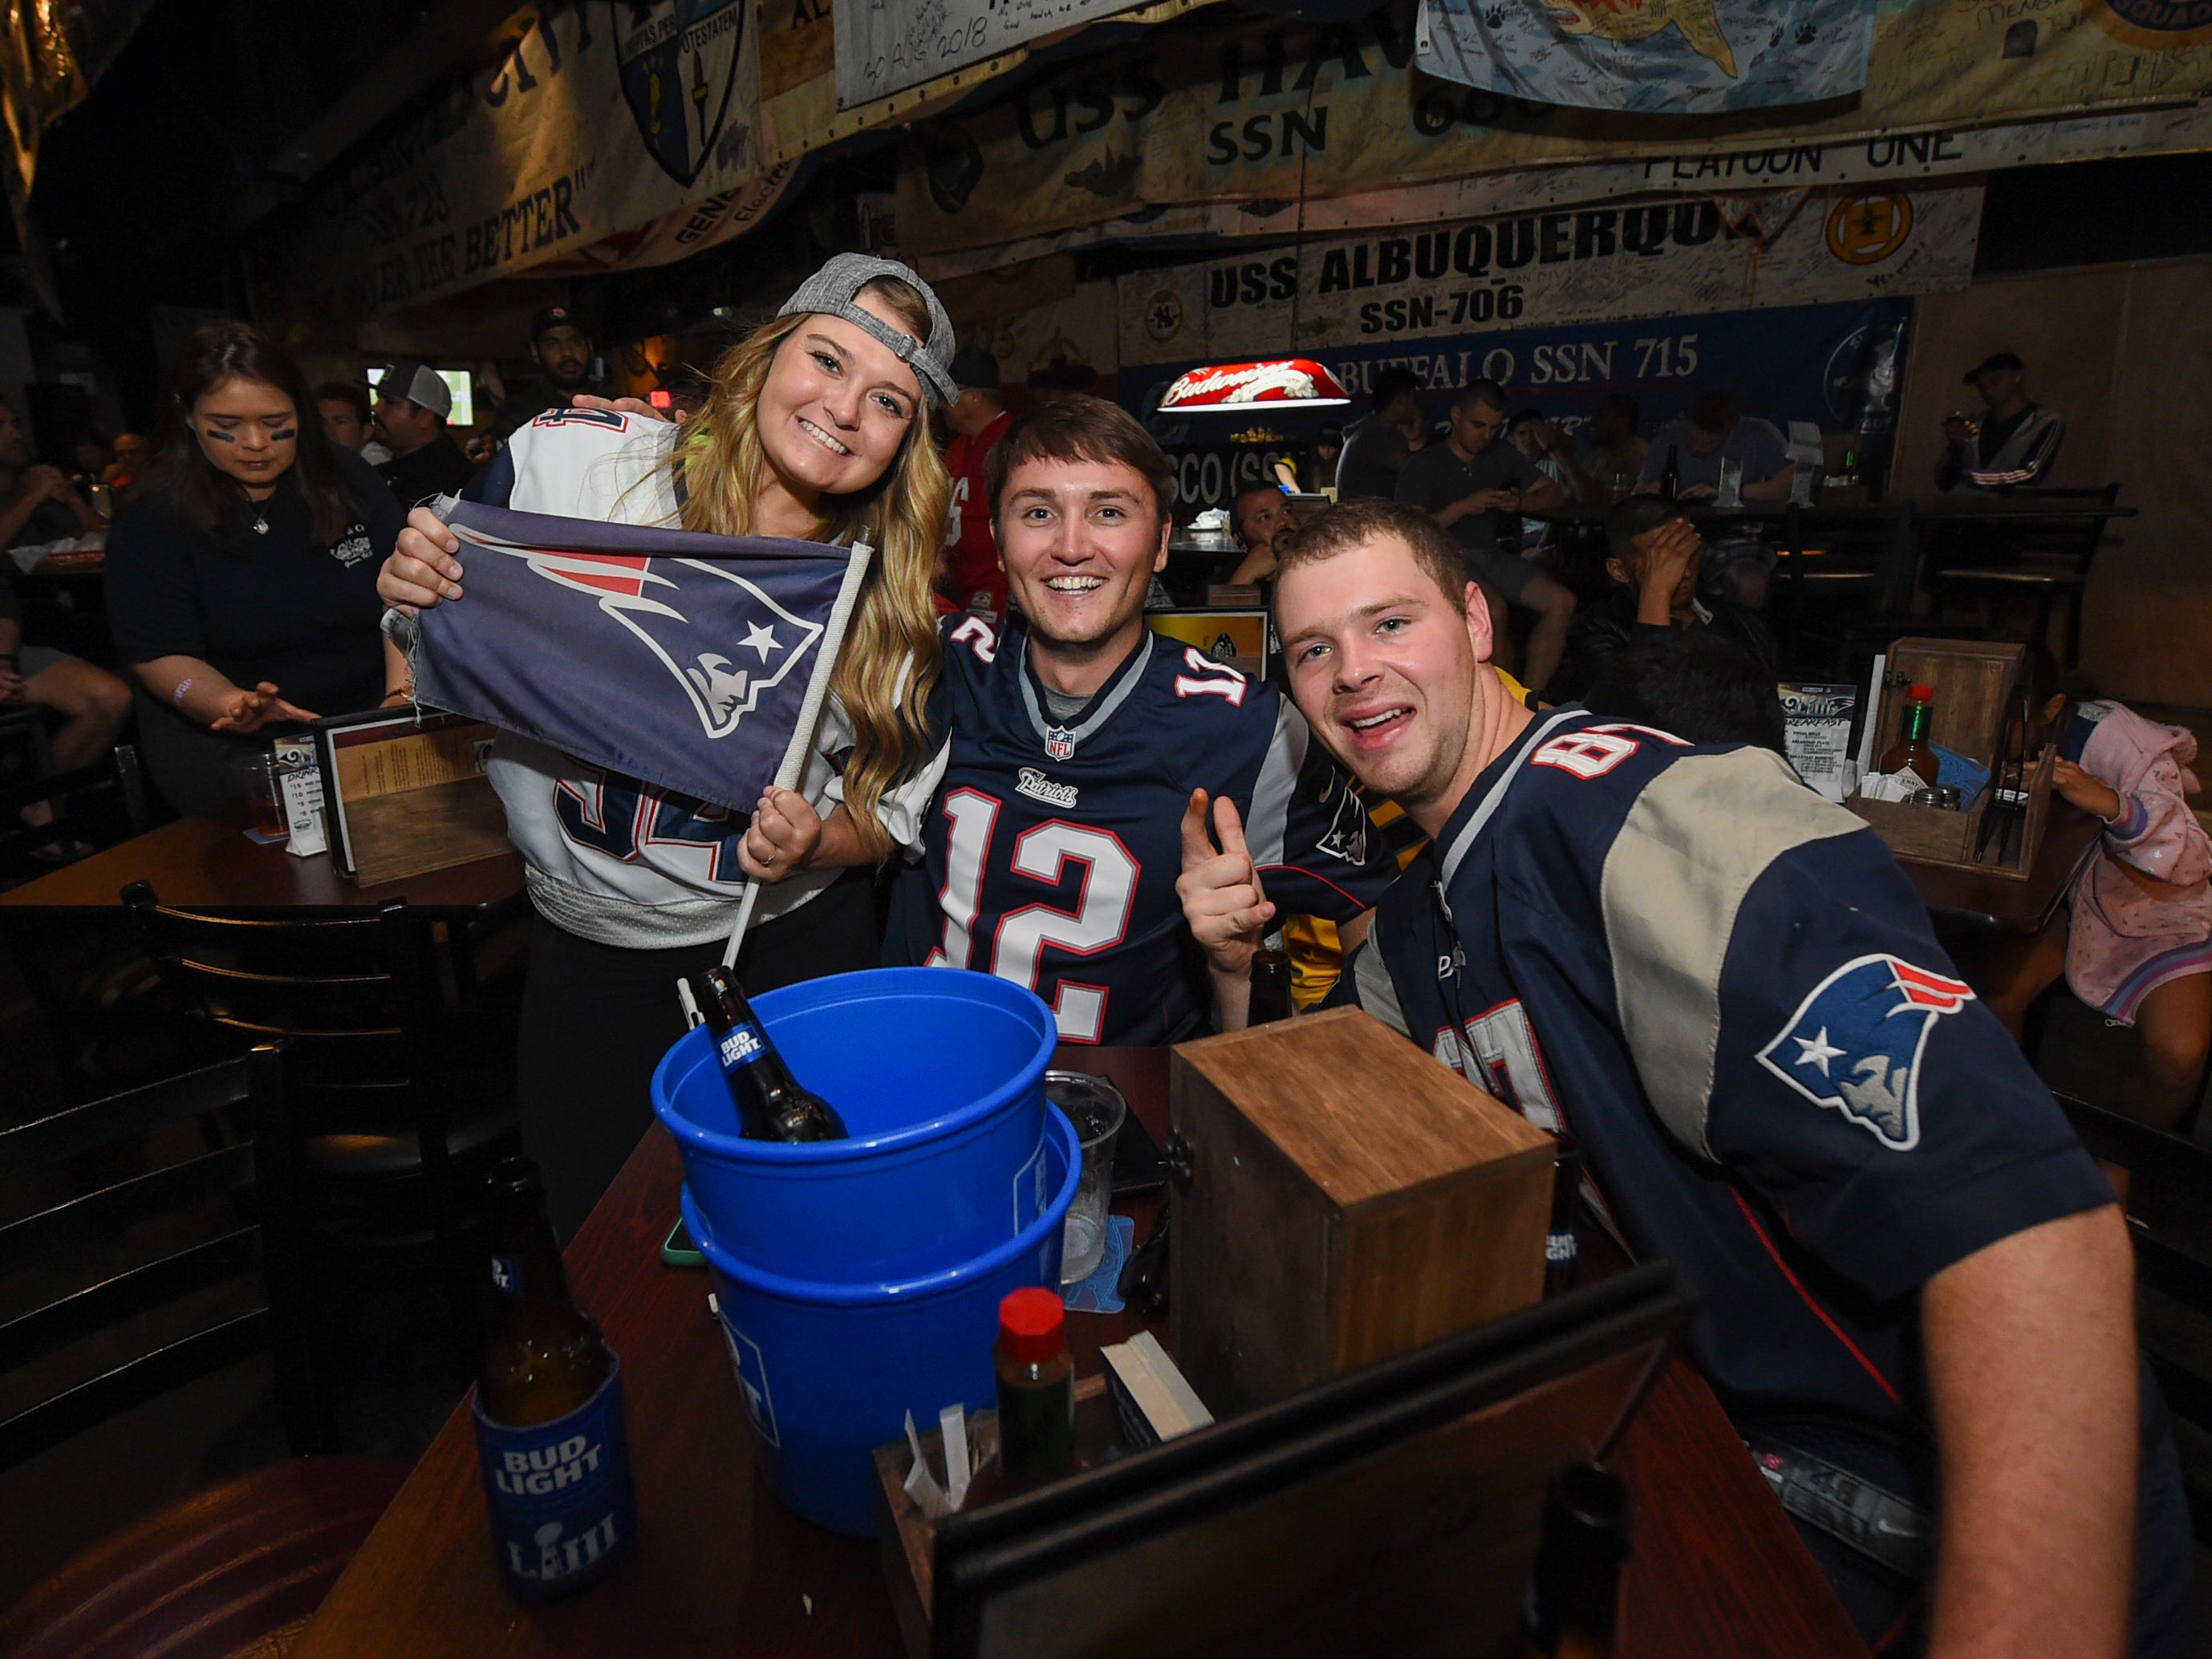 New England Patriots fans Jeff Kroeber, right, Mike Bonafilia, and Jackie Walsh sport their team's jerseys during a Horse and Cow Superbowl 53 party in Tamuning, Feb. 4, 2019.